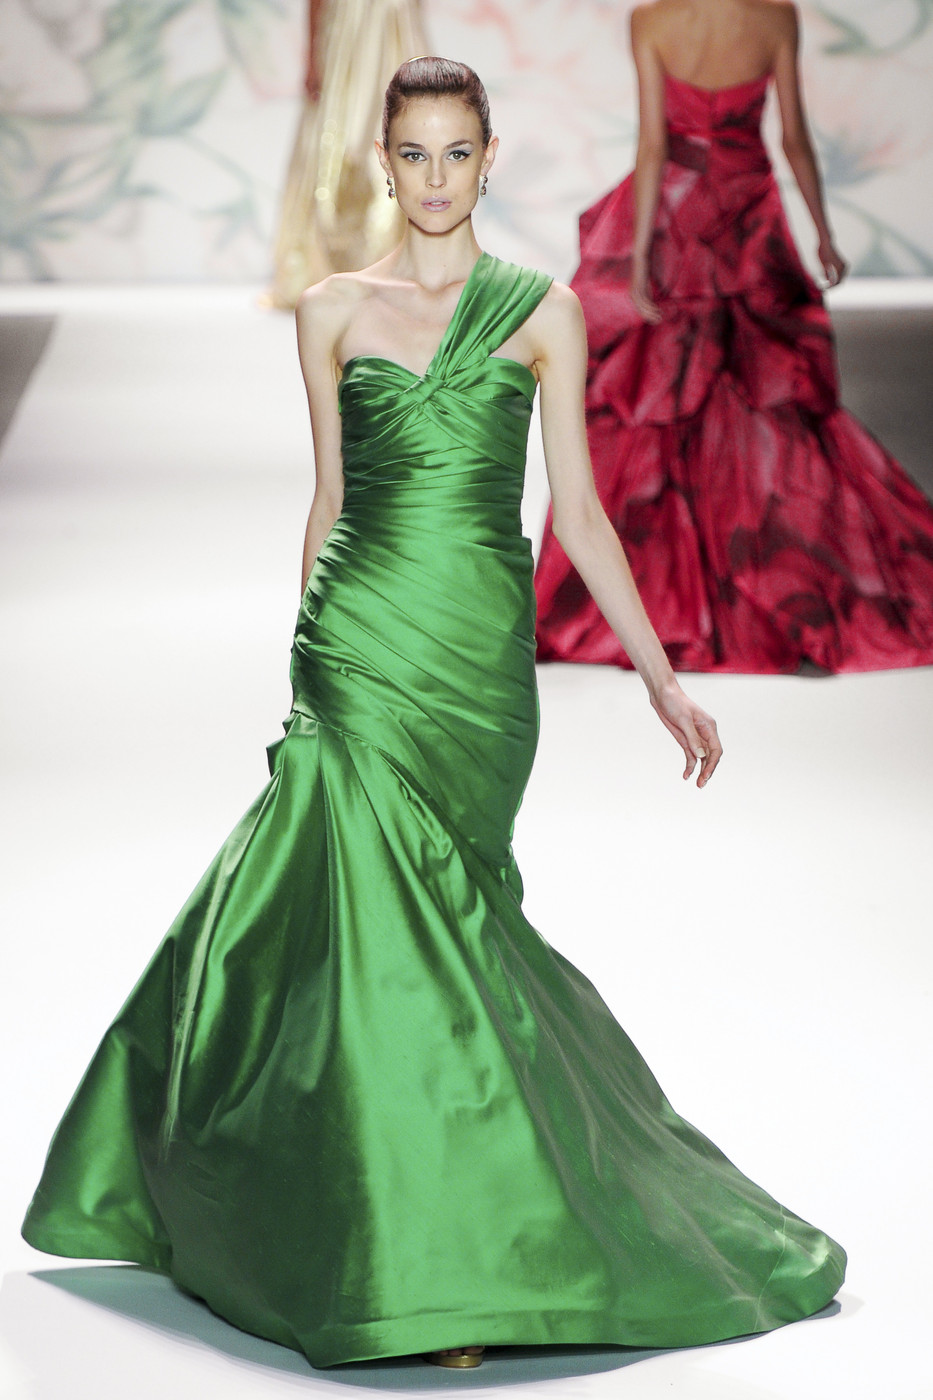 via fashioned by love | Monique Lhulilier Spring/Summer 2011 | green